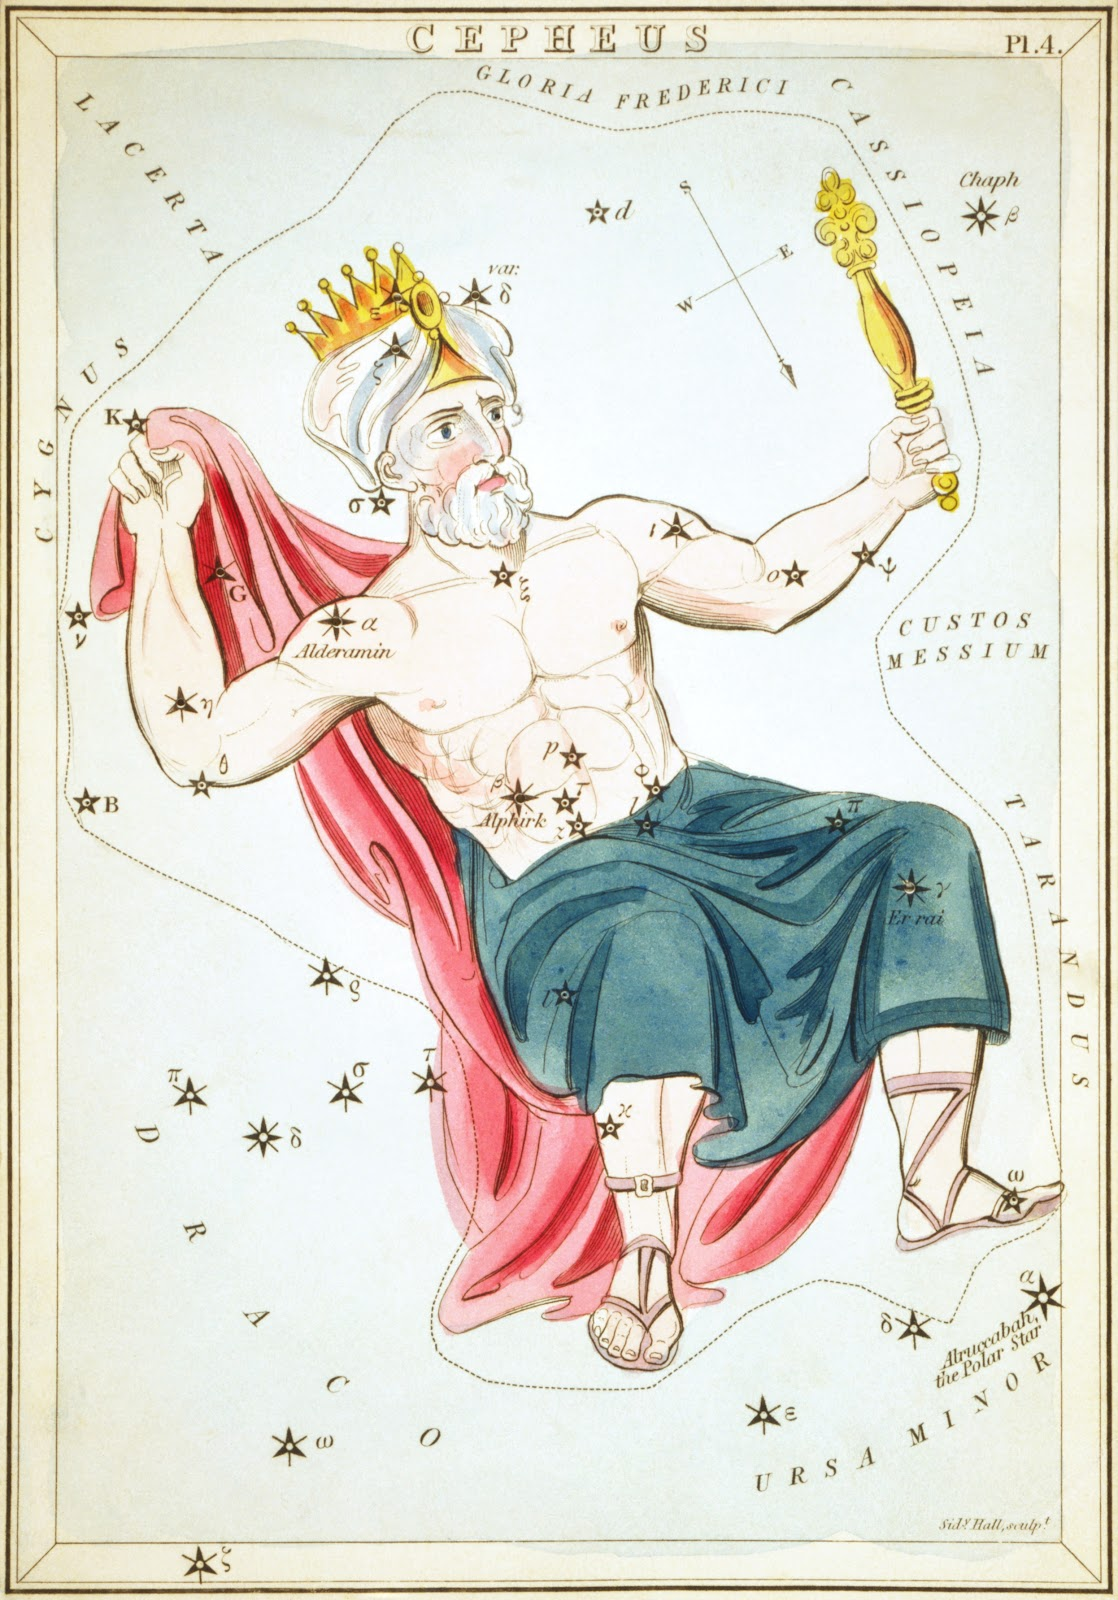 Cepheus as depicted in